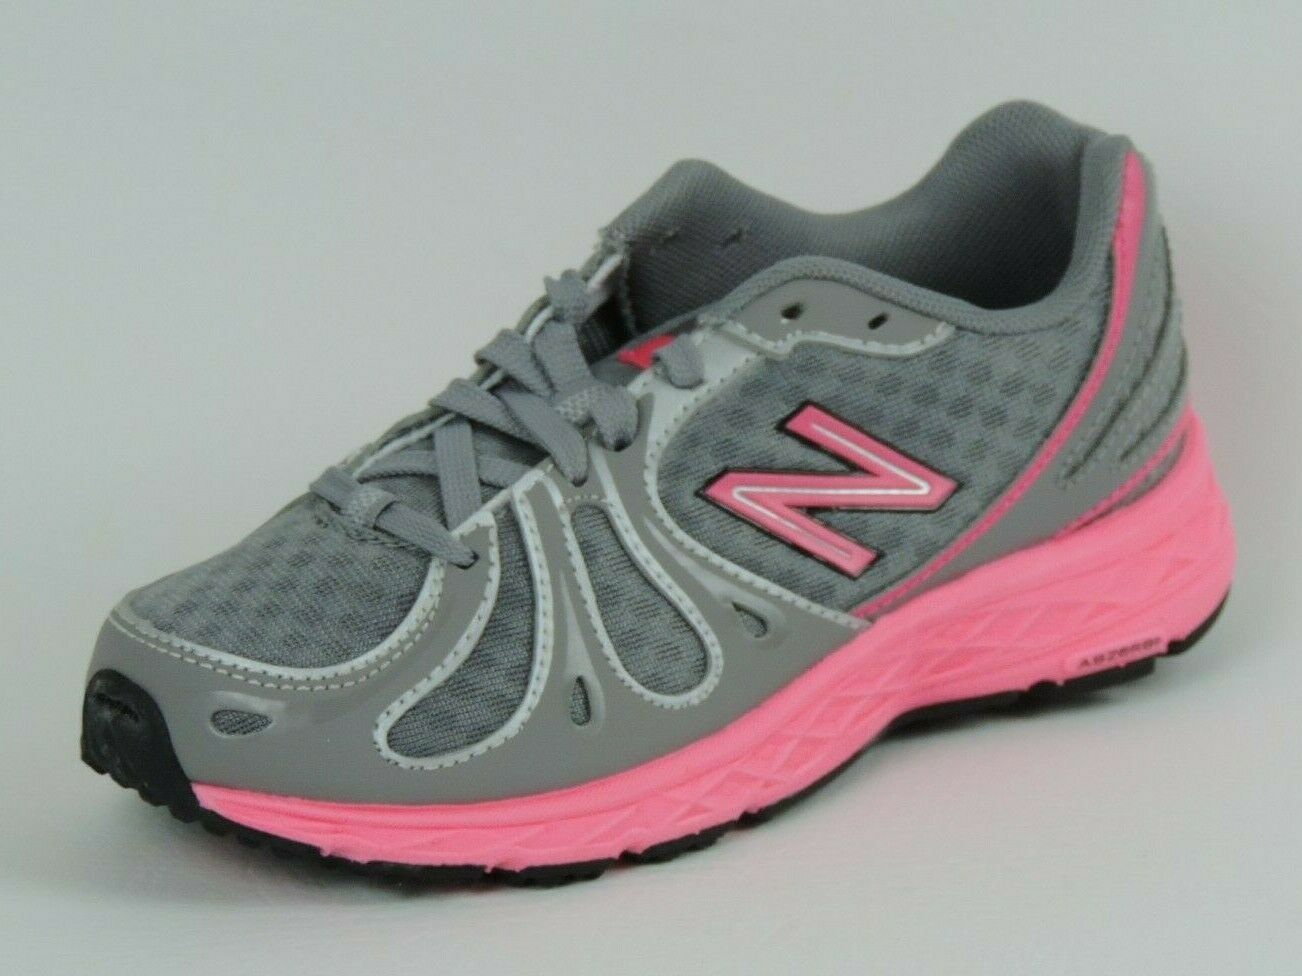 New Balance KJ890GPP/GOP Girls Shoes Running Course Pink Mesh Grey Dead Stock